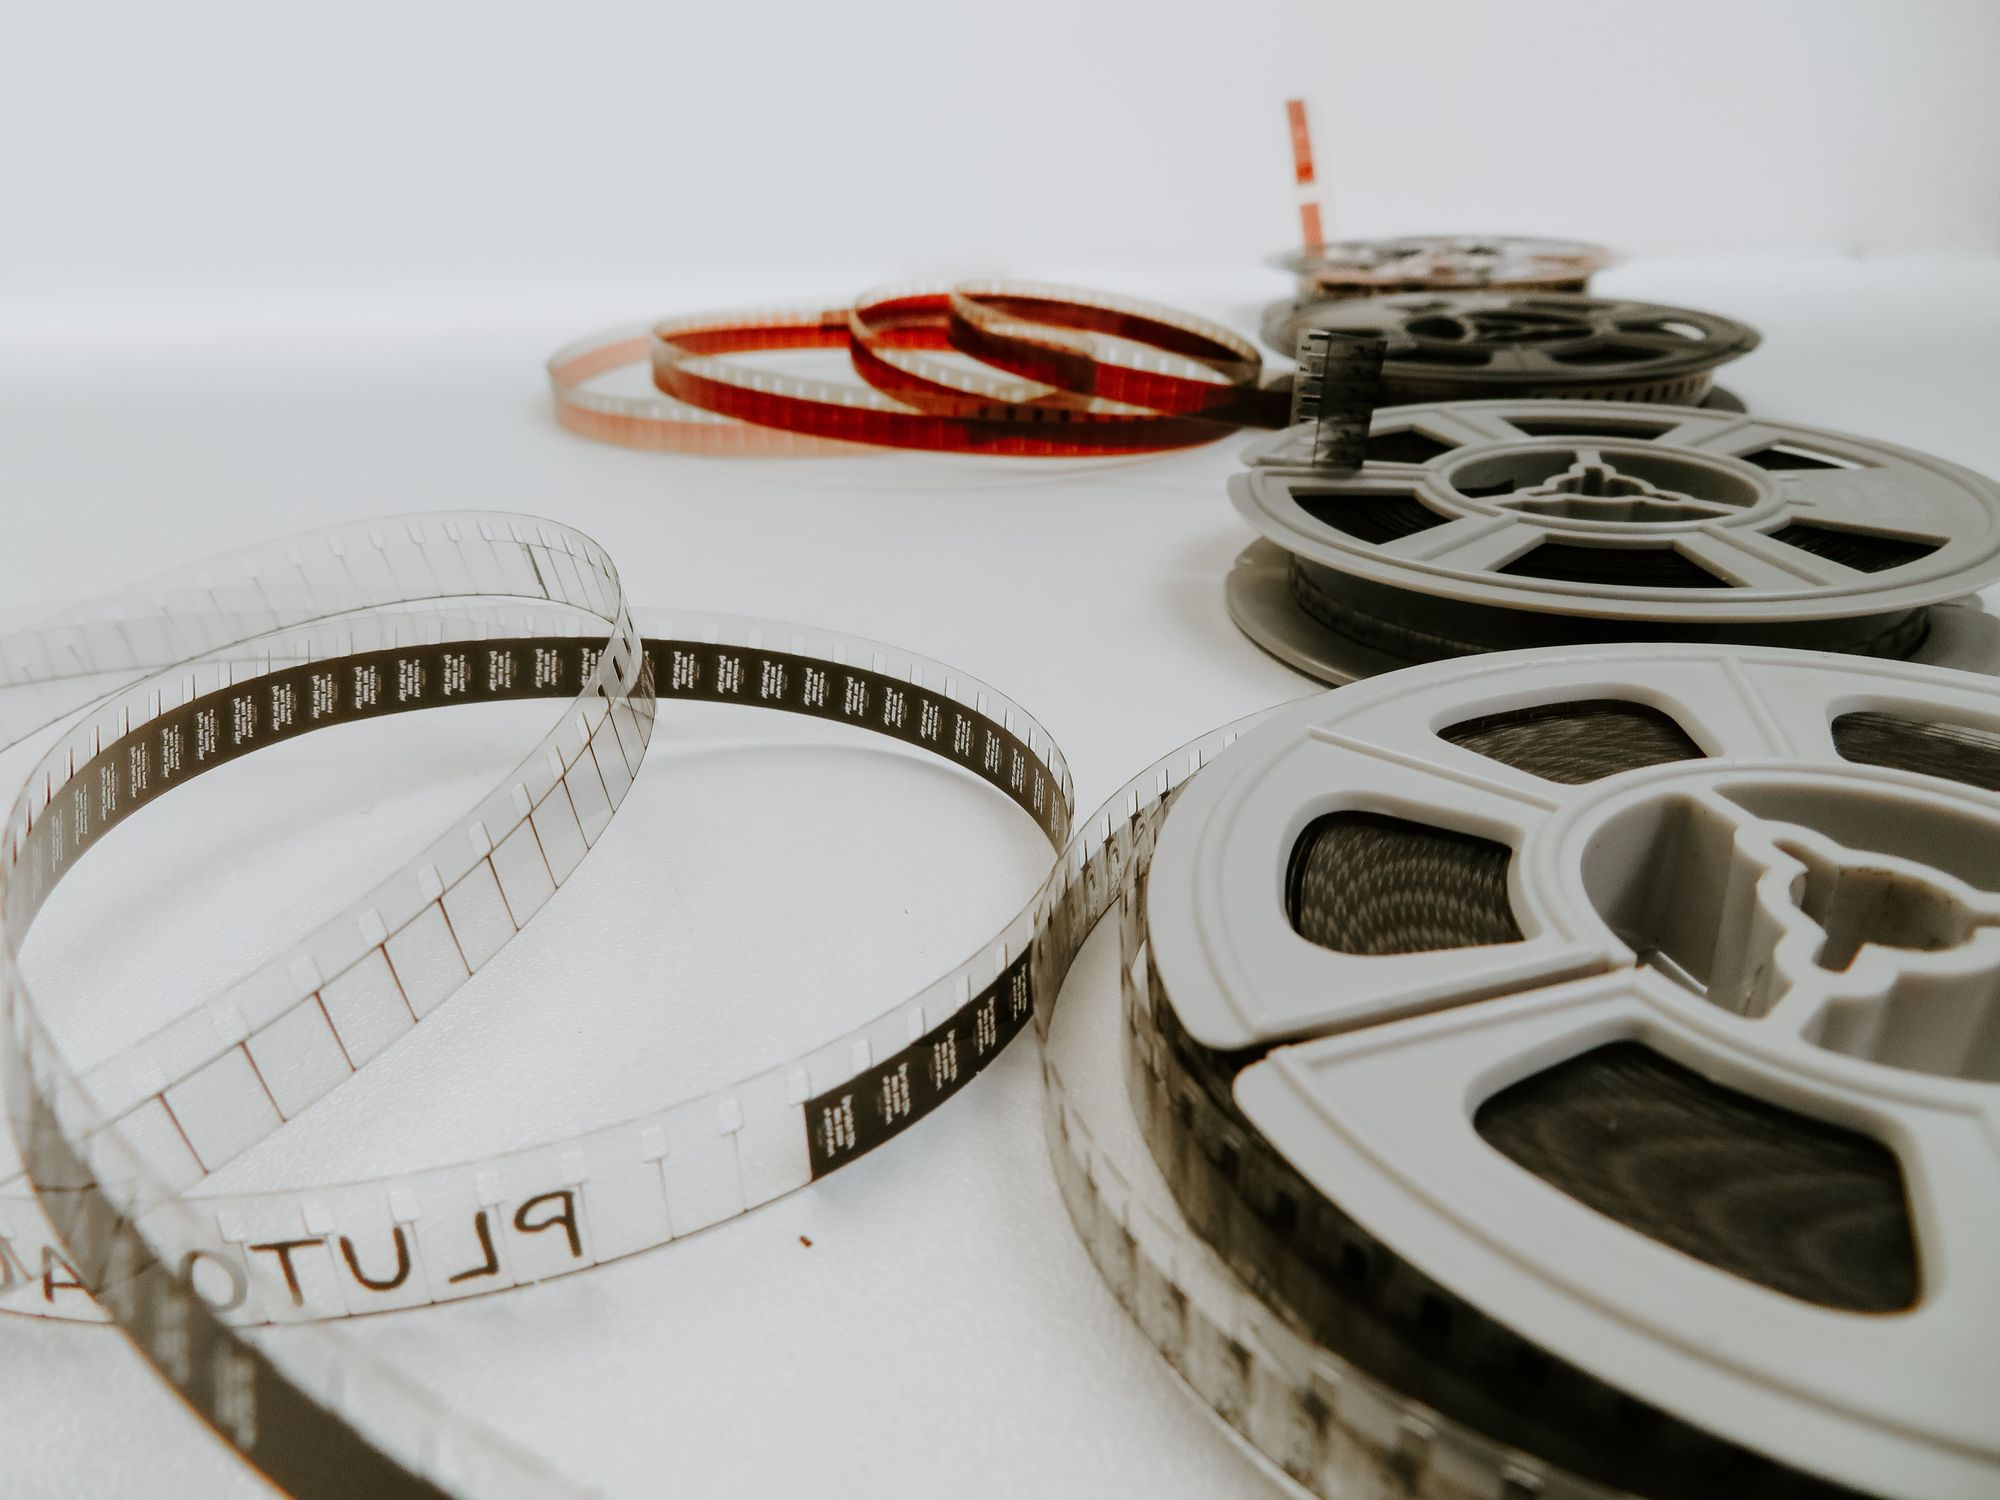 Break down your script to get started on your film budget